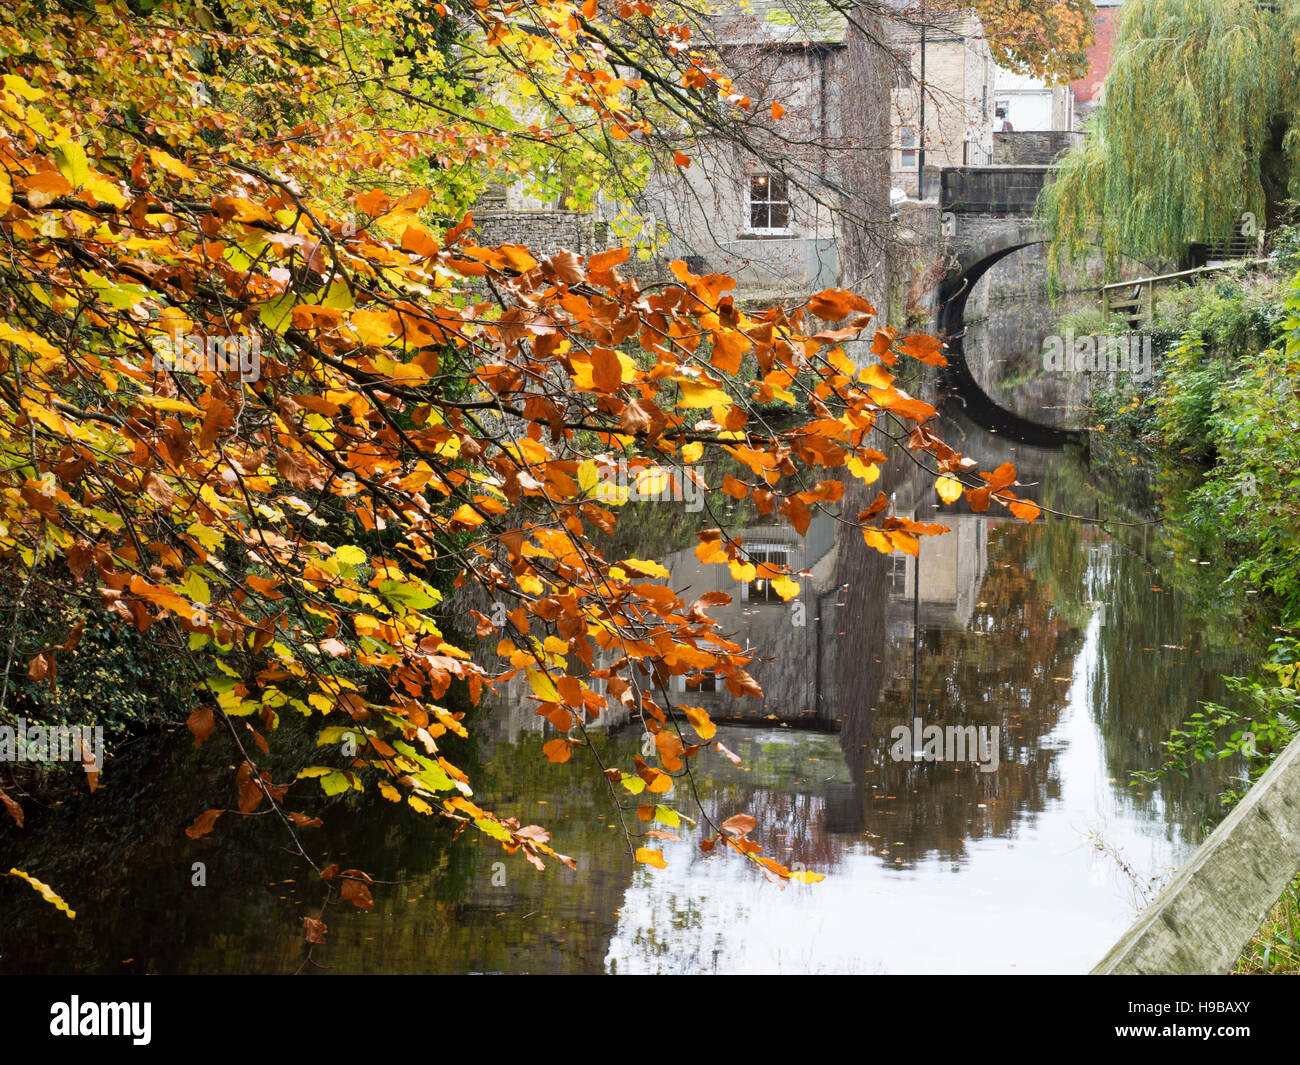 The Springs Branch of the Leeds and Liverpool Canal in Autumn Skipton North Yorkshire England - Stock Image